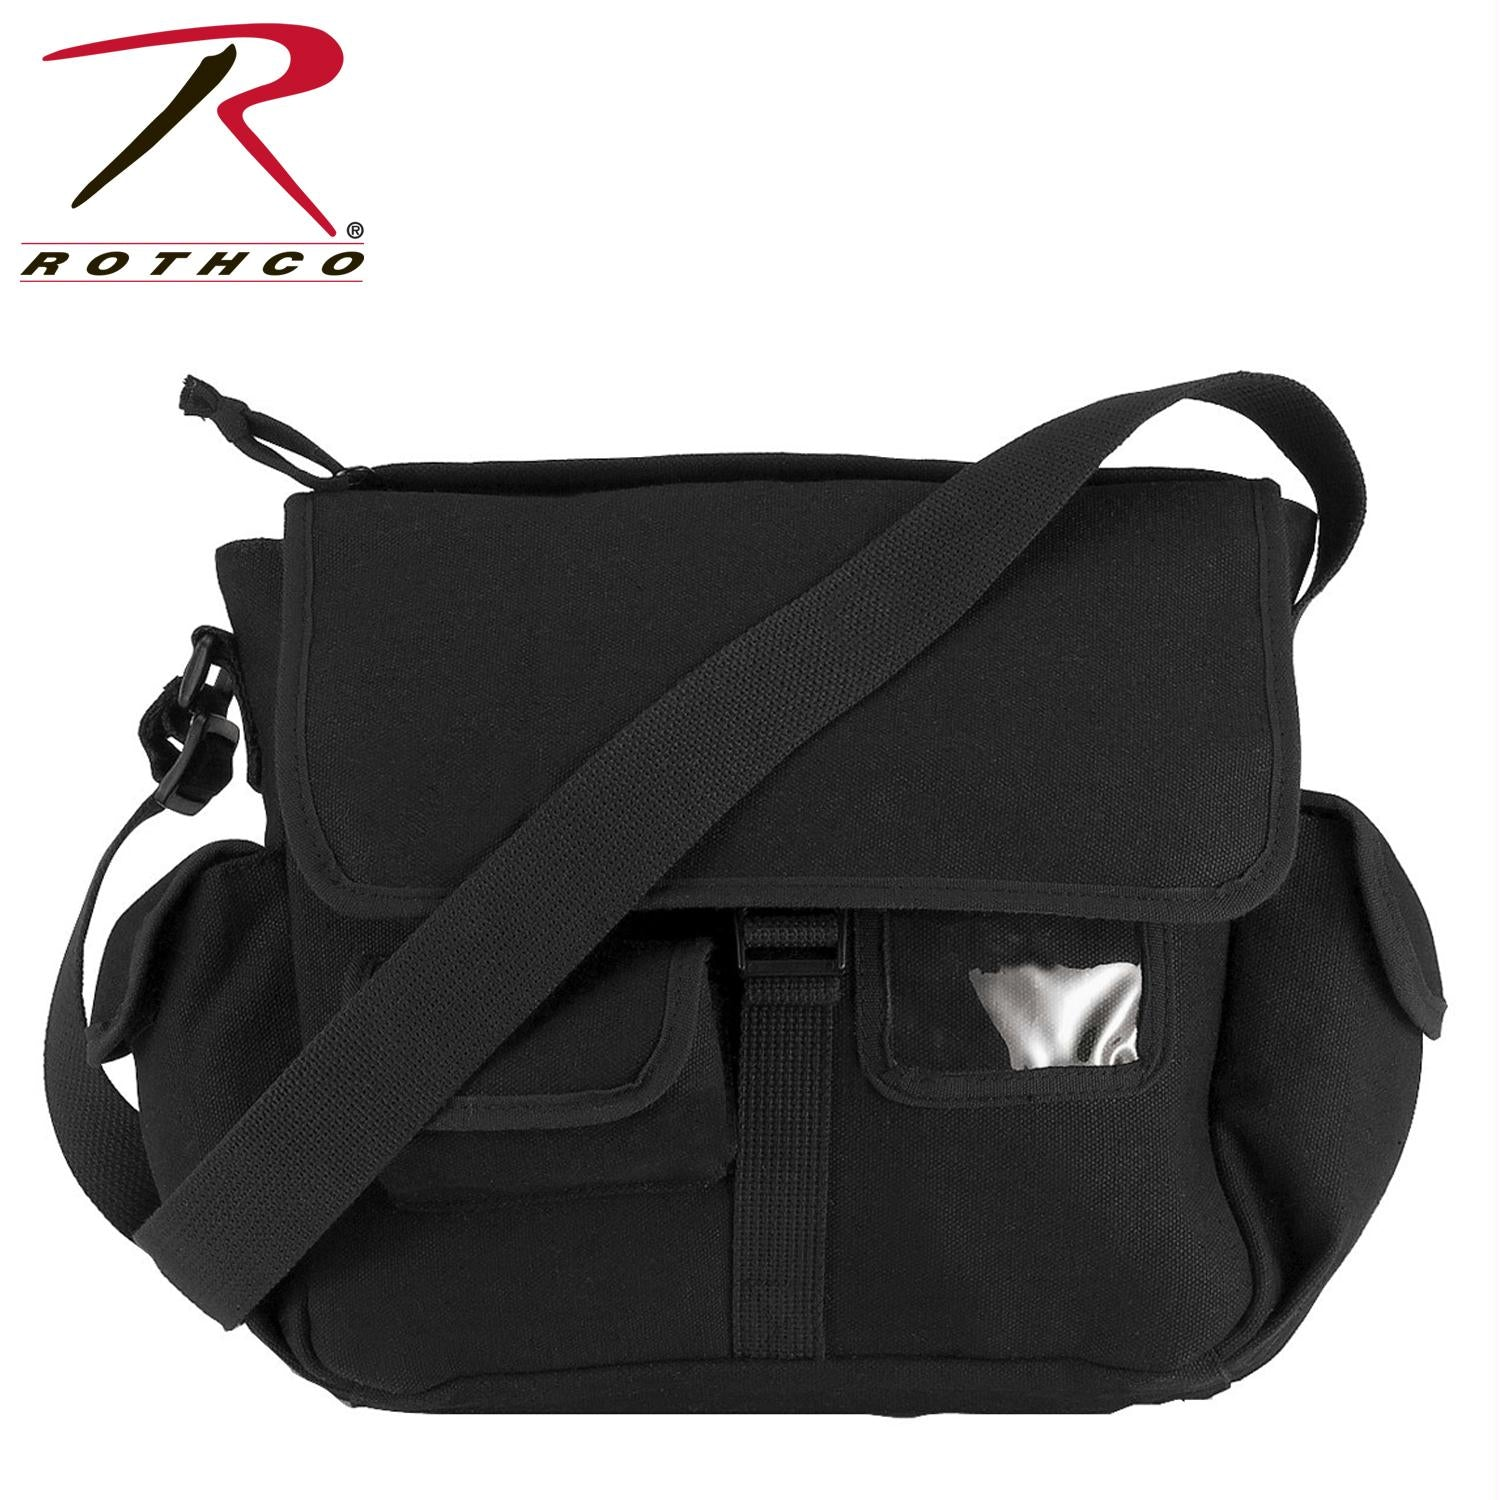 Rothco Canvas Urban Explorer Bag - Black